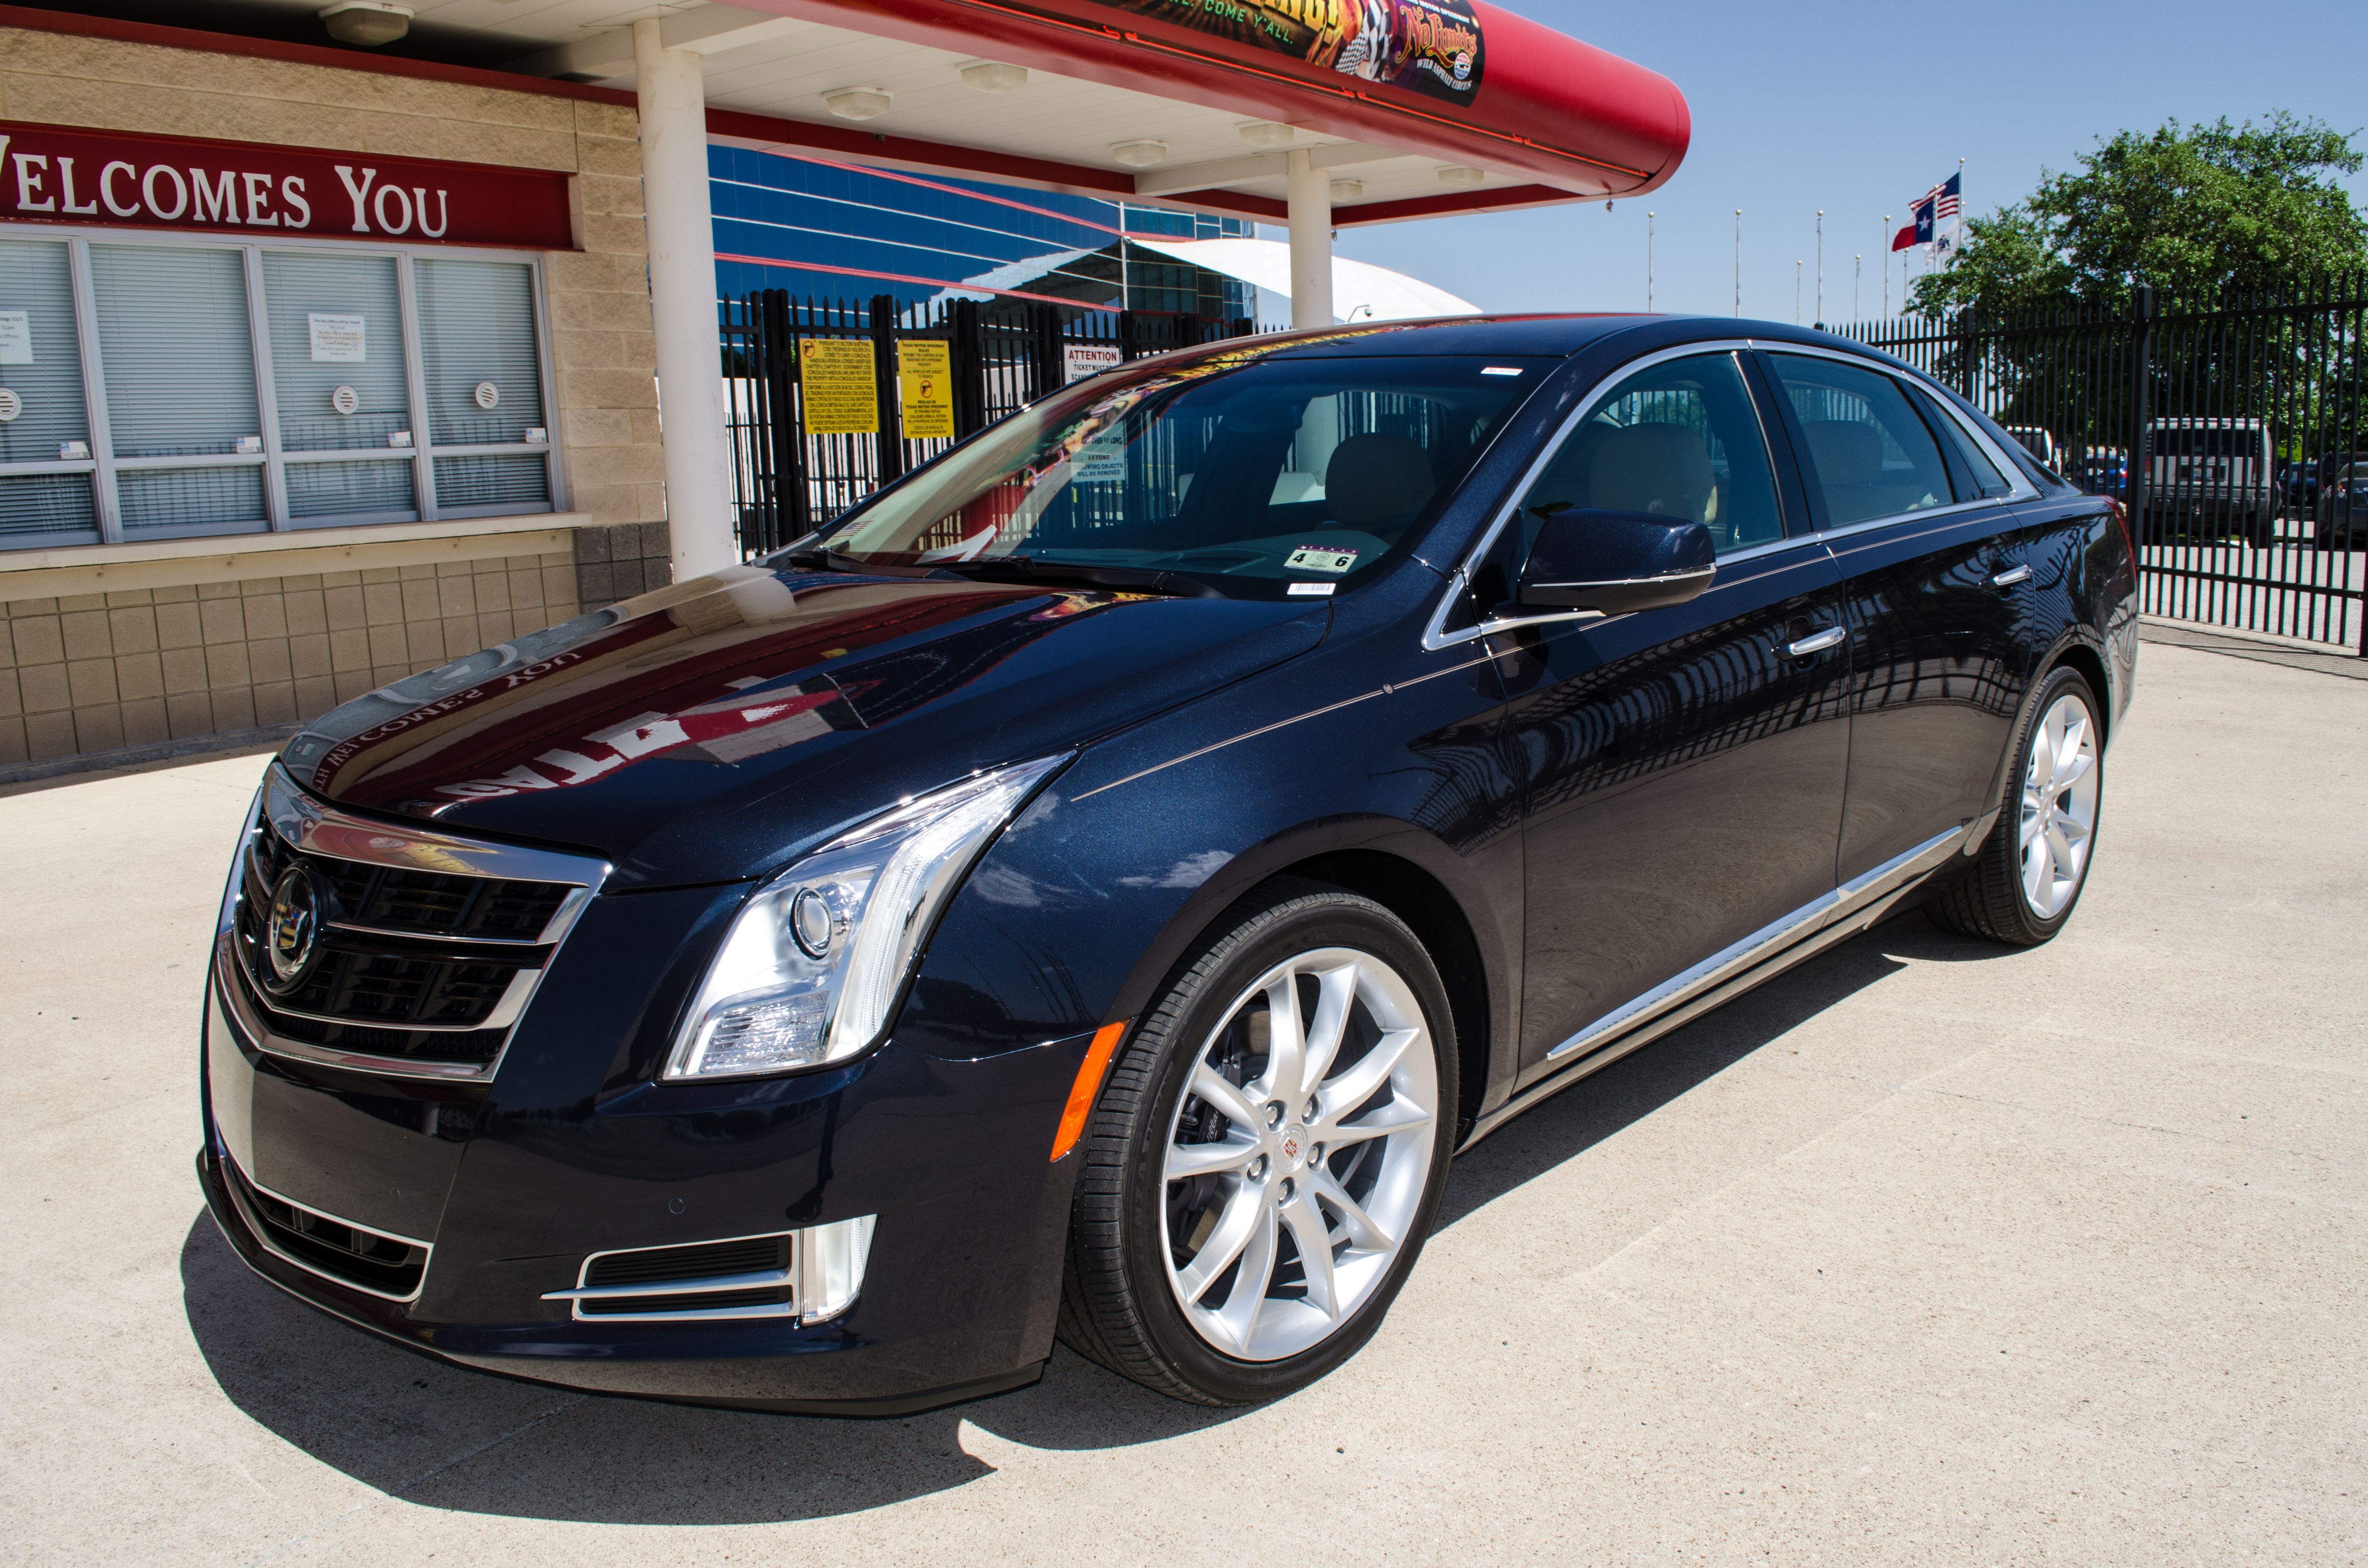 cadillac xts car and driver 2018 2019 car release date and reviews cadillac xts v sport motor review